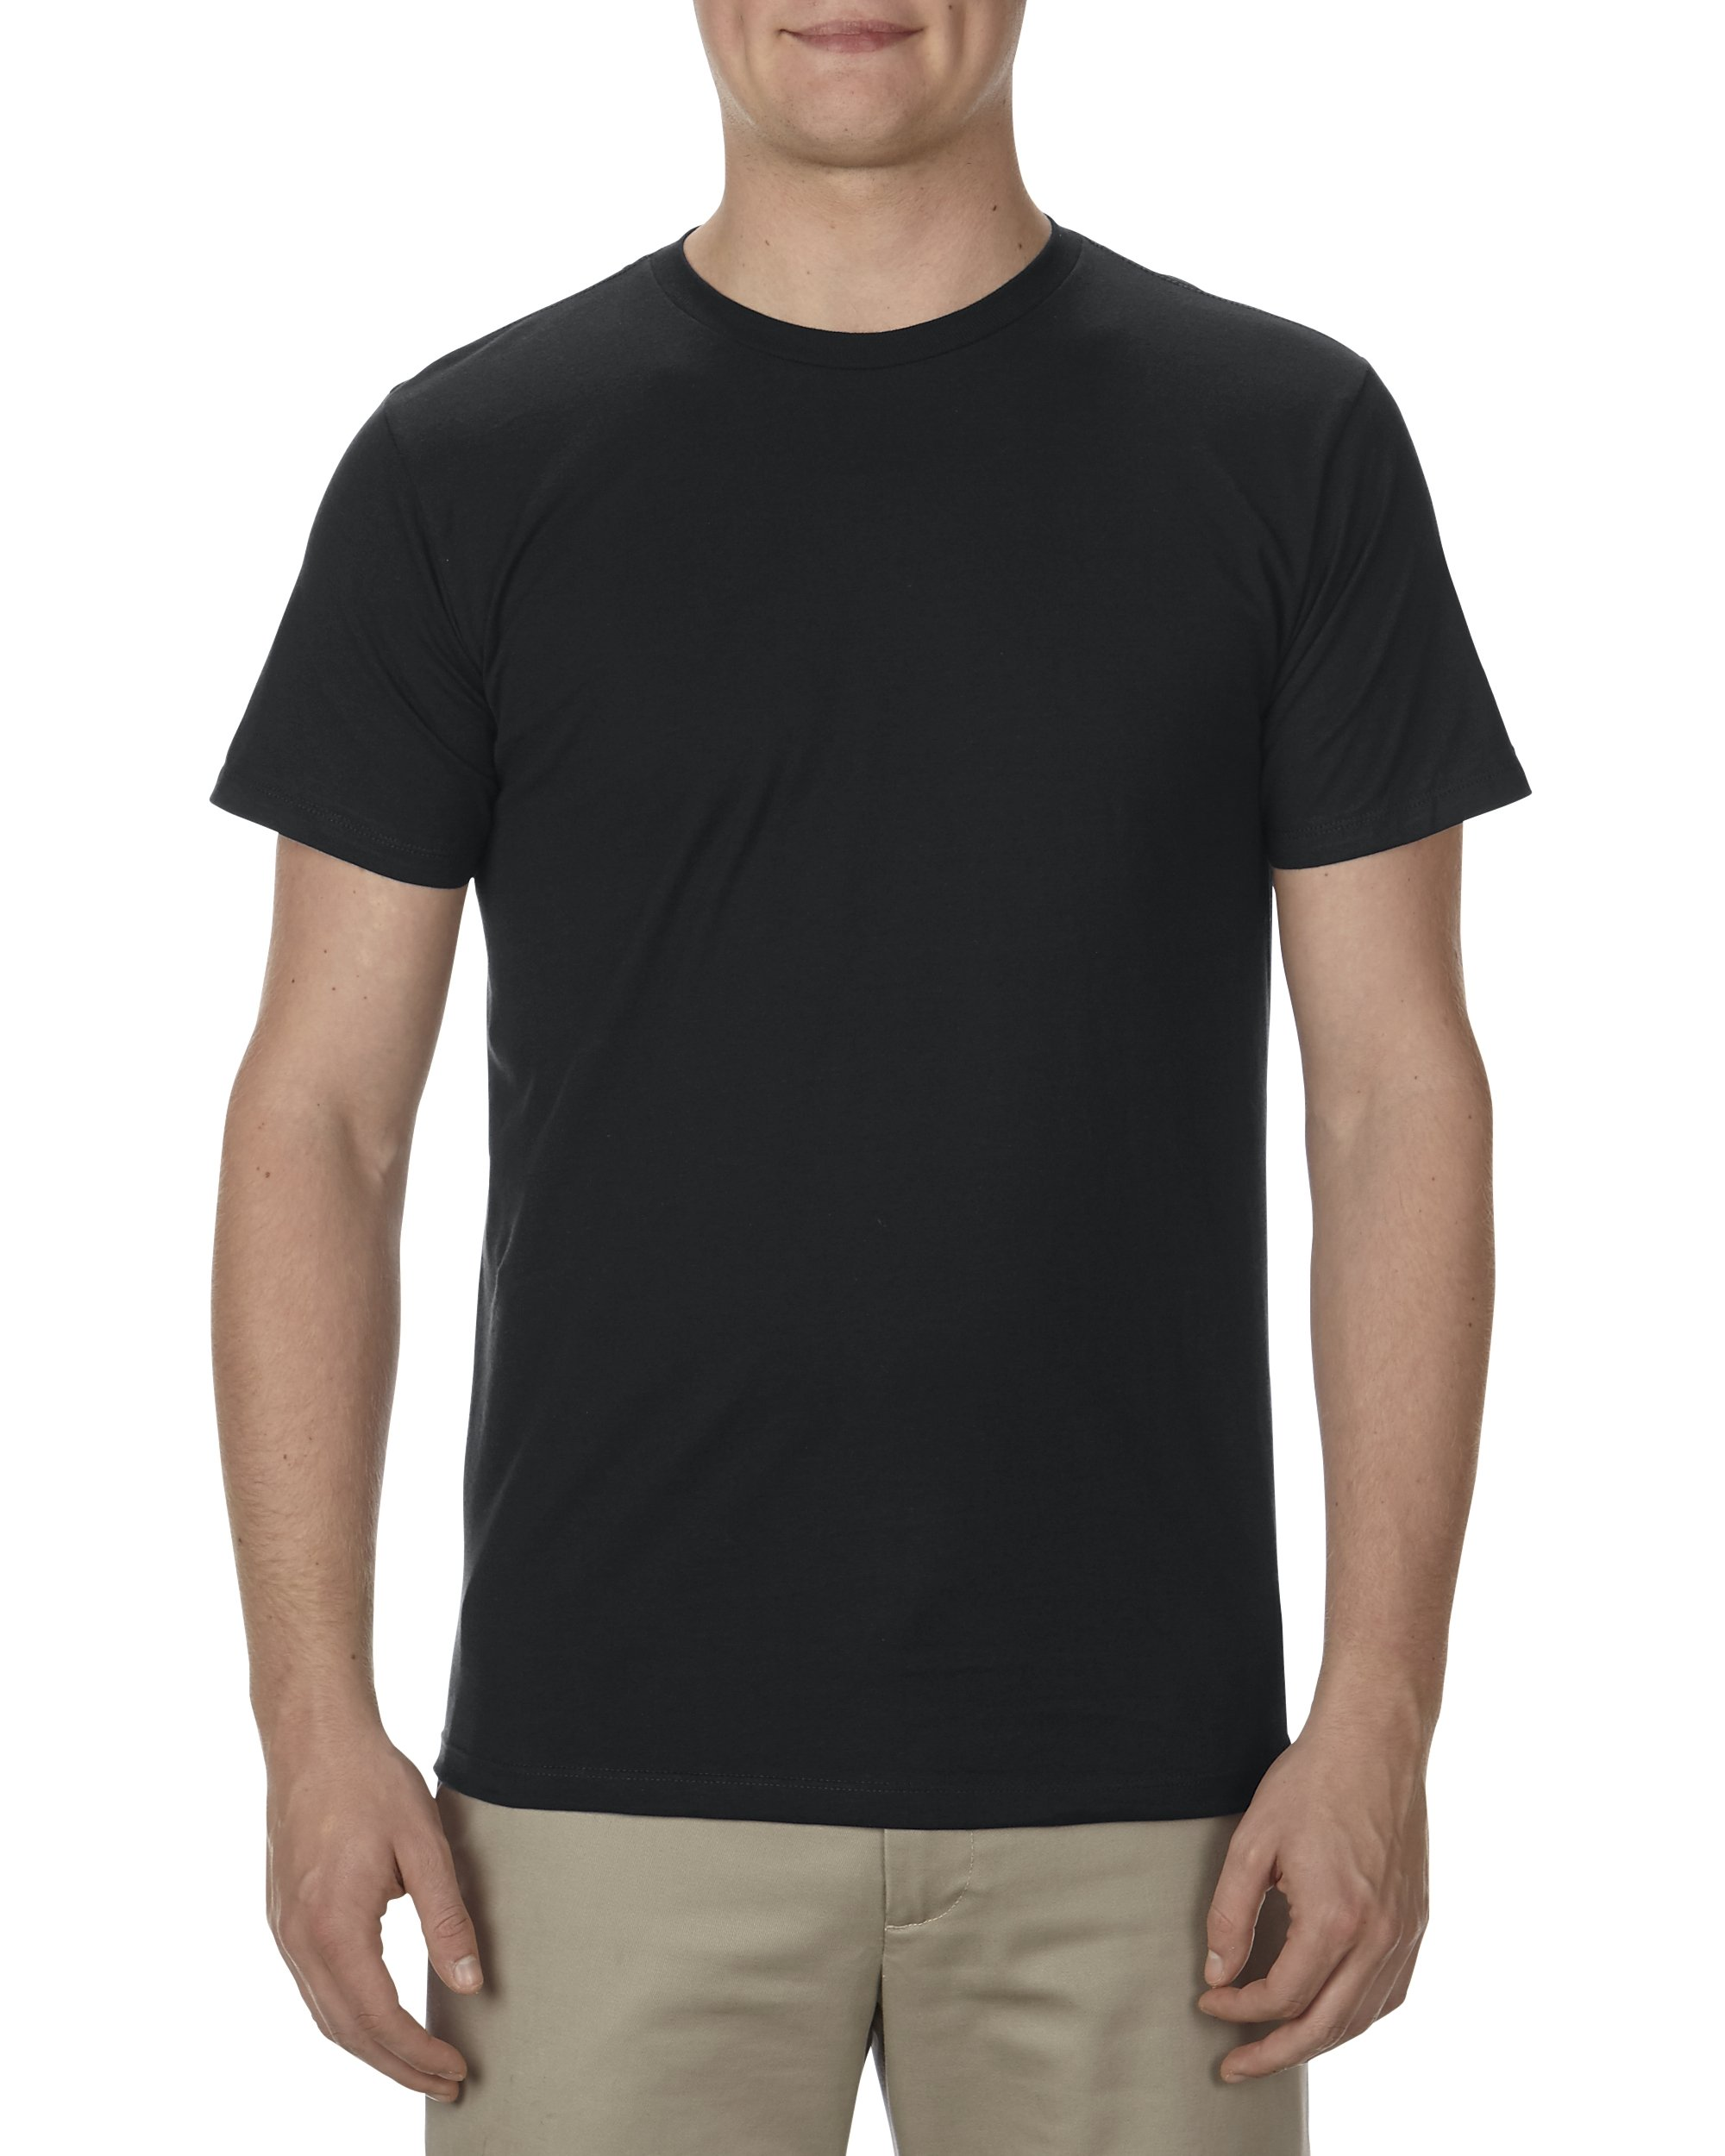 Alstyle Apparel AAA Men's Ultimate Lightweight Ringspun T-Shirt, Black, XX-Large